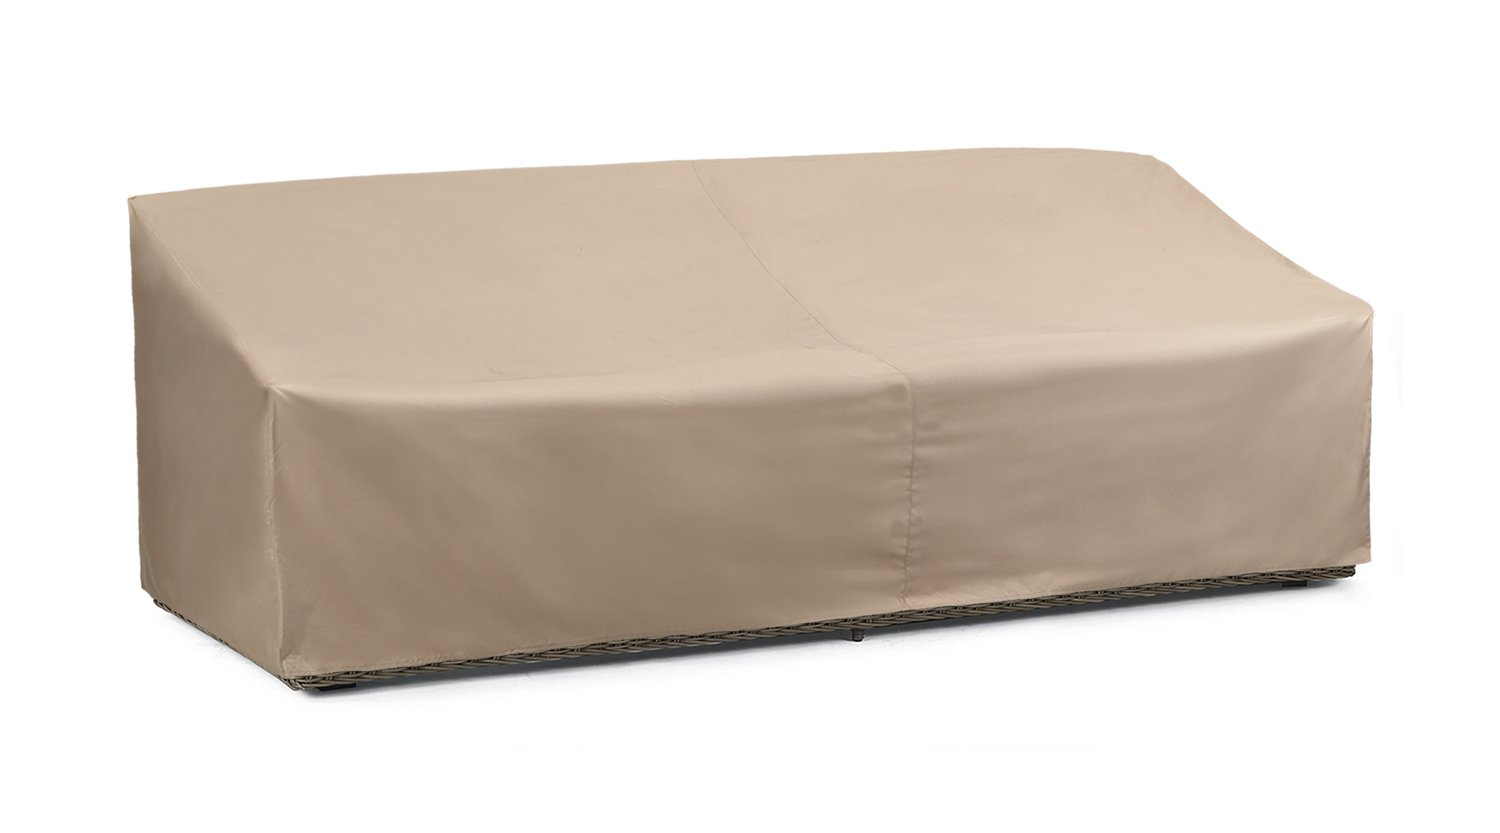 SunPatio Outdoor Oversized Sofa Cover, Lightweight, Water Resistant, Eco-Friendly, Helpful Air Vents, All Weather Protection, Beige, 93.5'' L x 45'' W x 39'' H